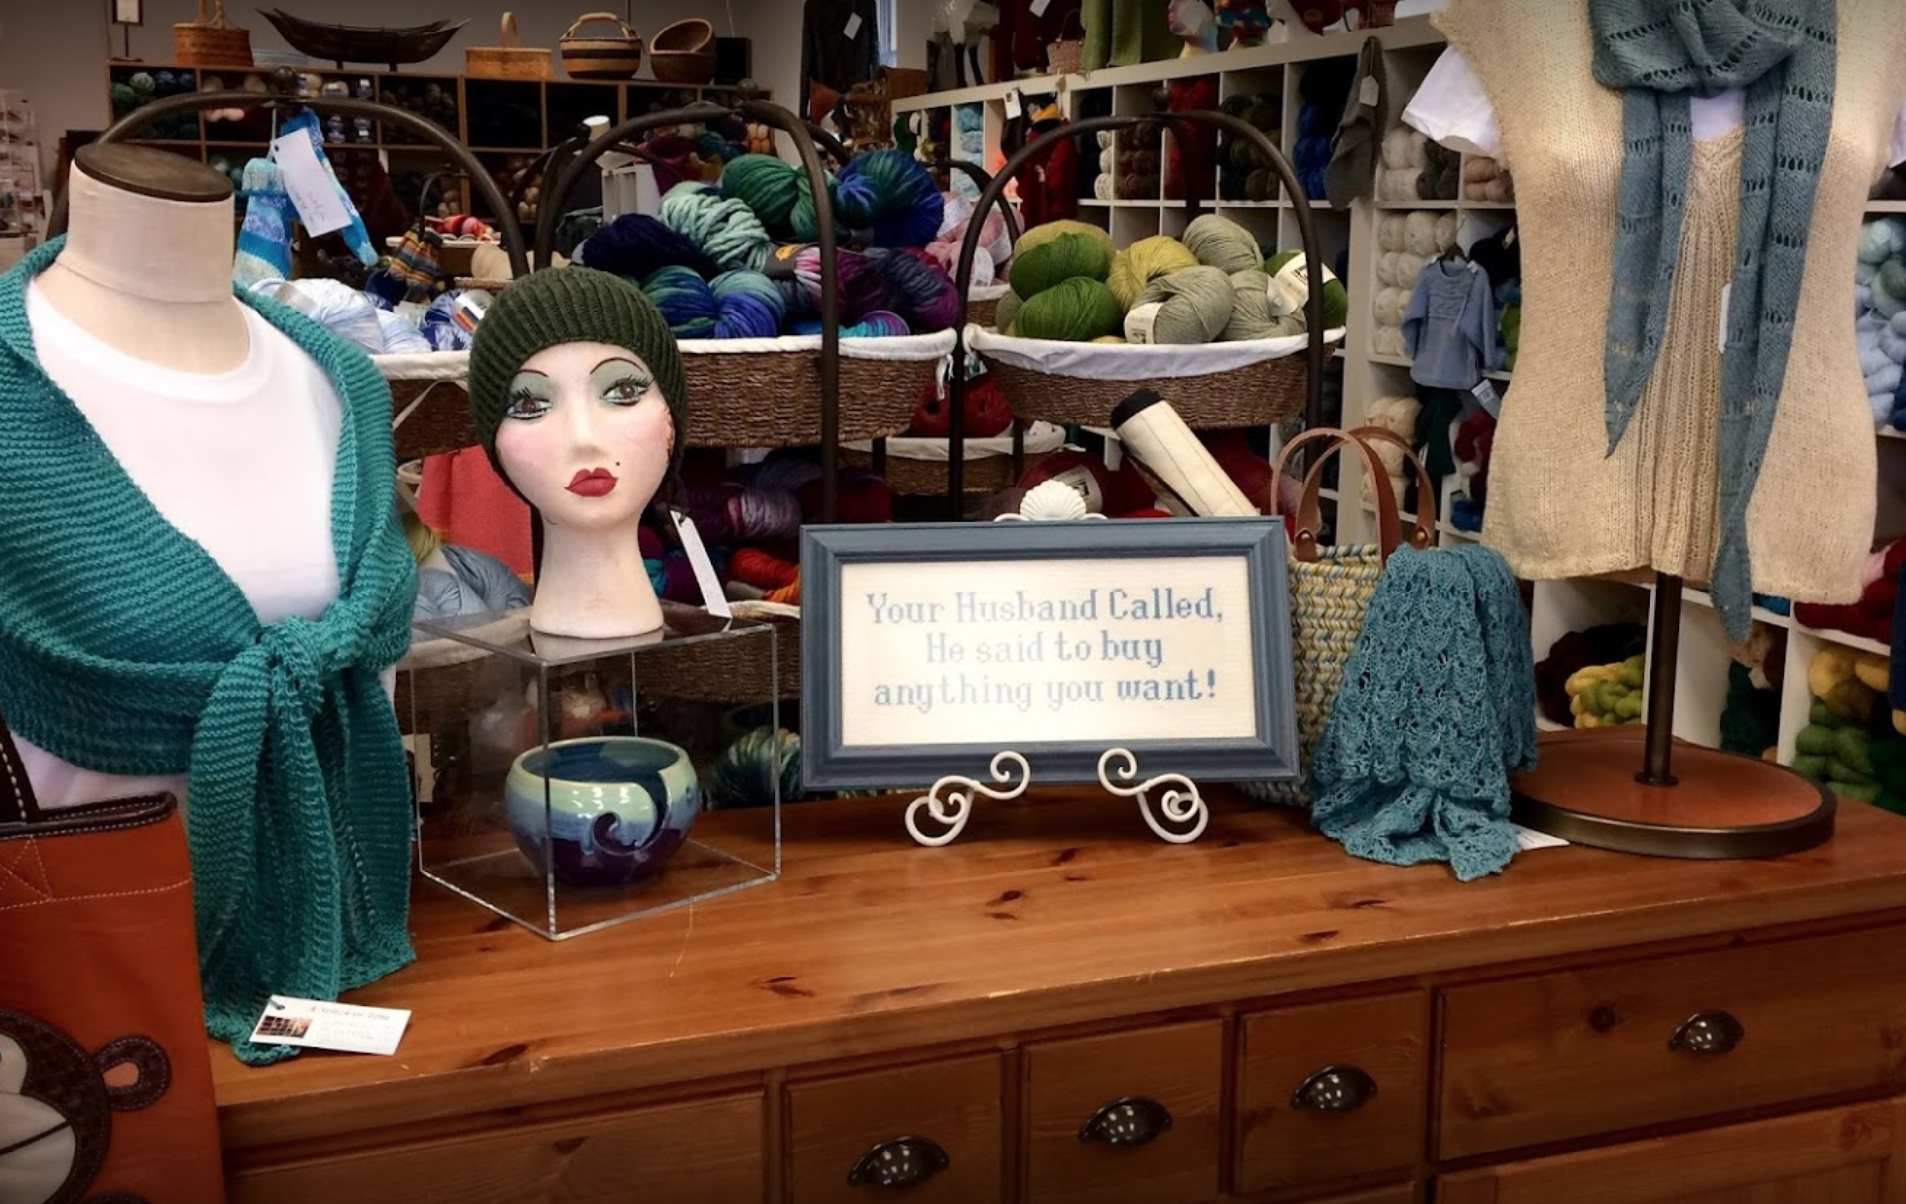 A Stitch in Time - Address: 10 Stony Hill Road, Bethel, CT 06801http://www.astitchintimect.com